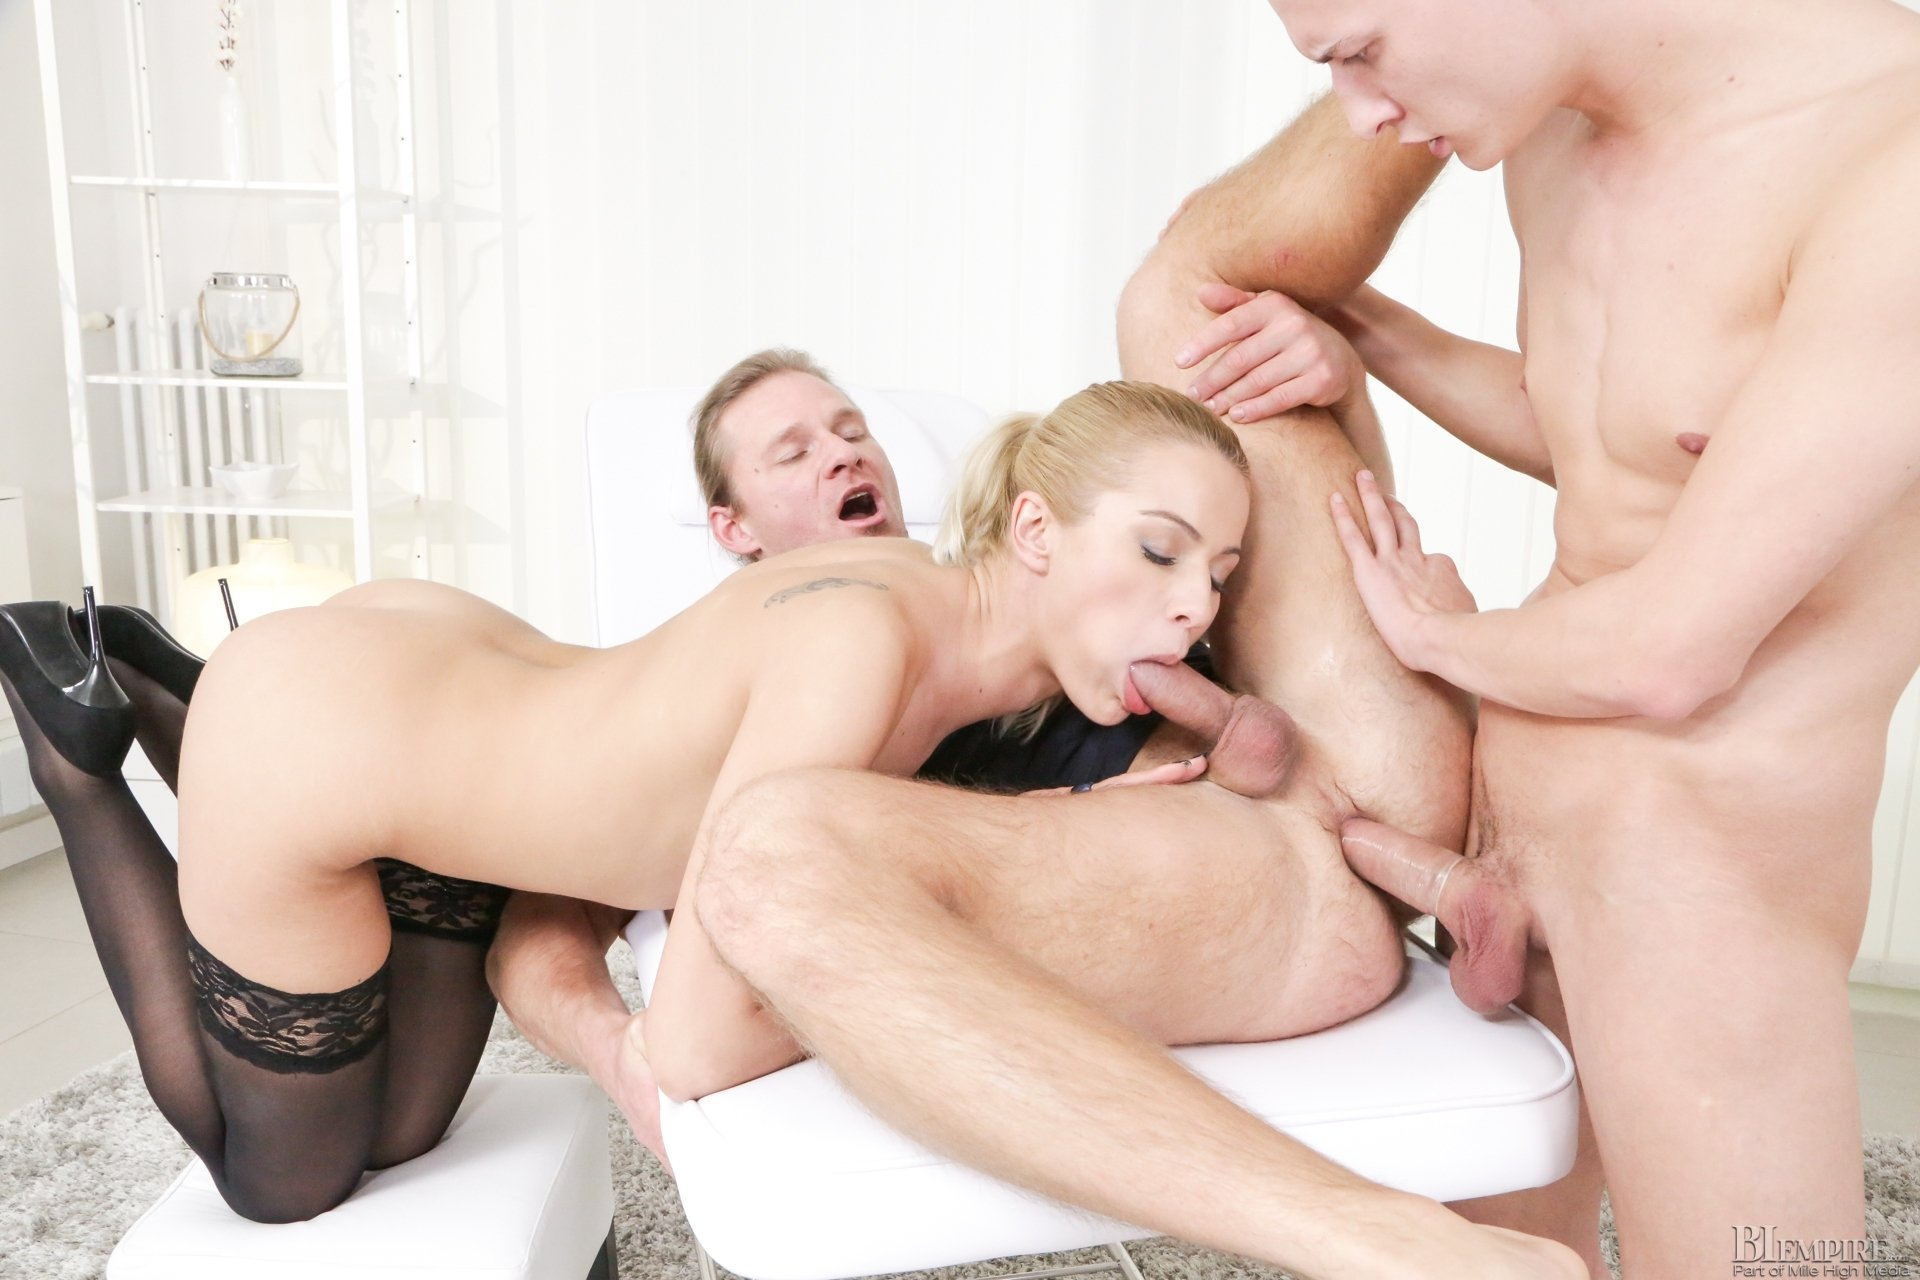 hard whipping mistress pov from behind porn